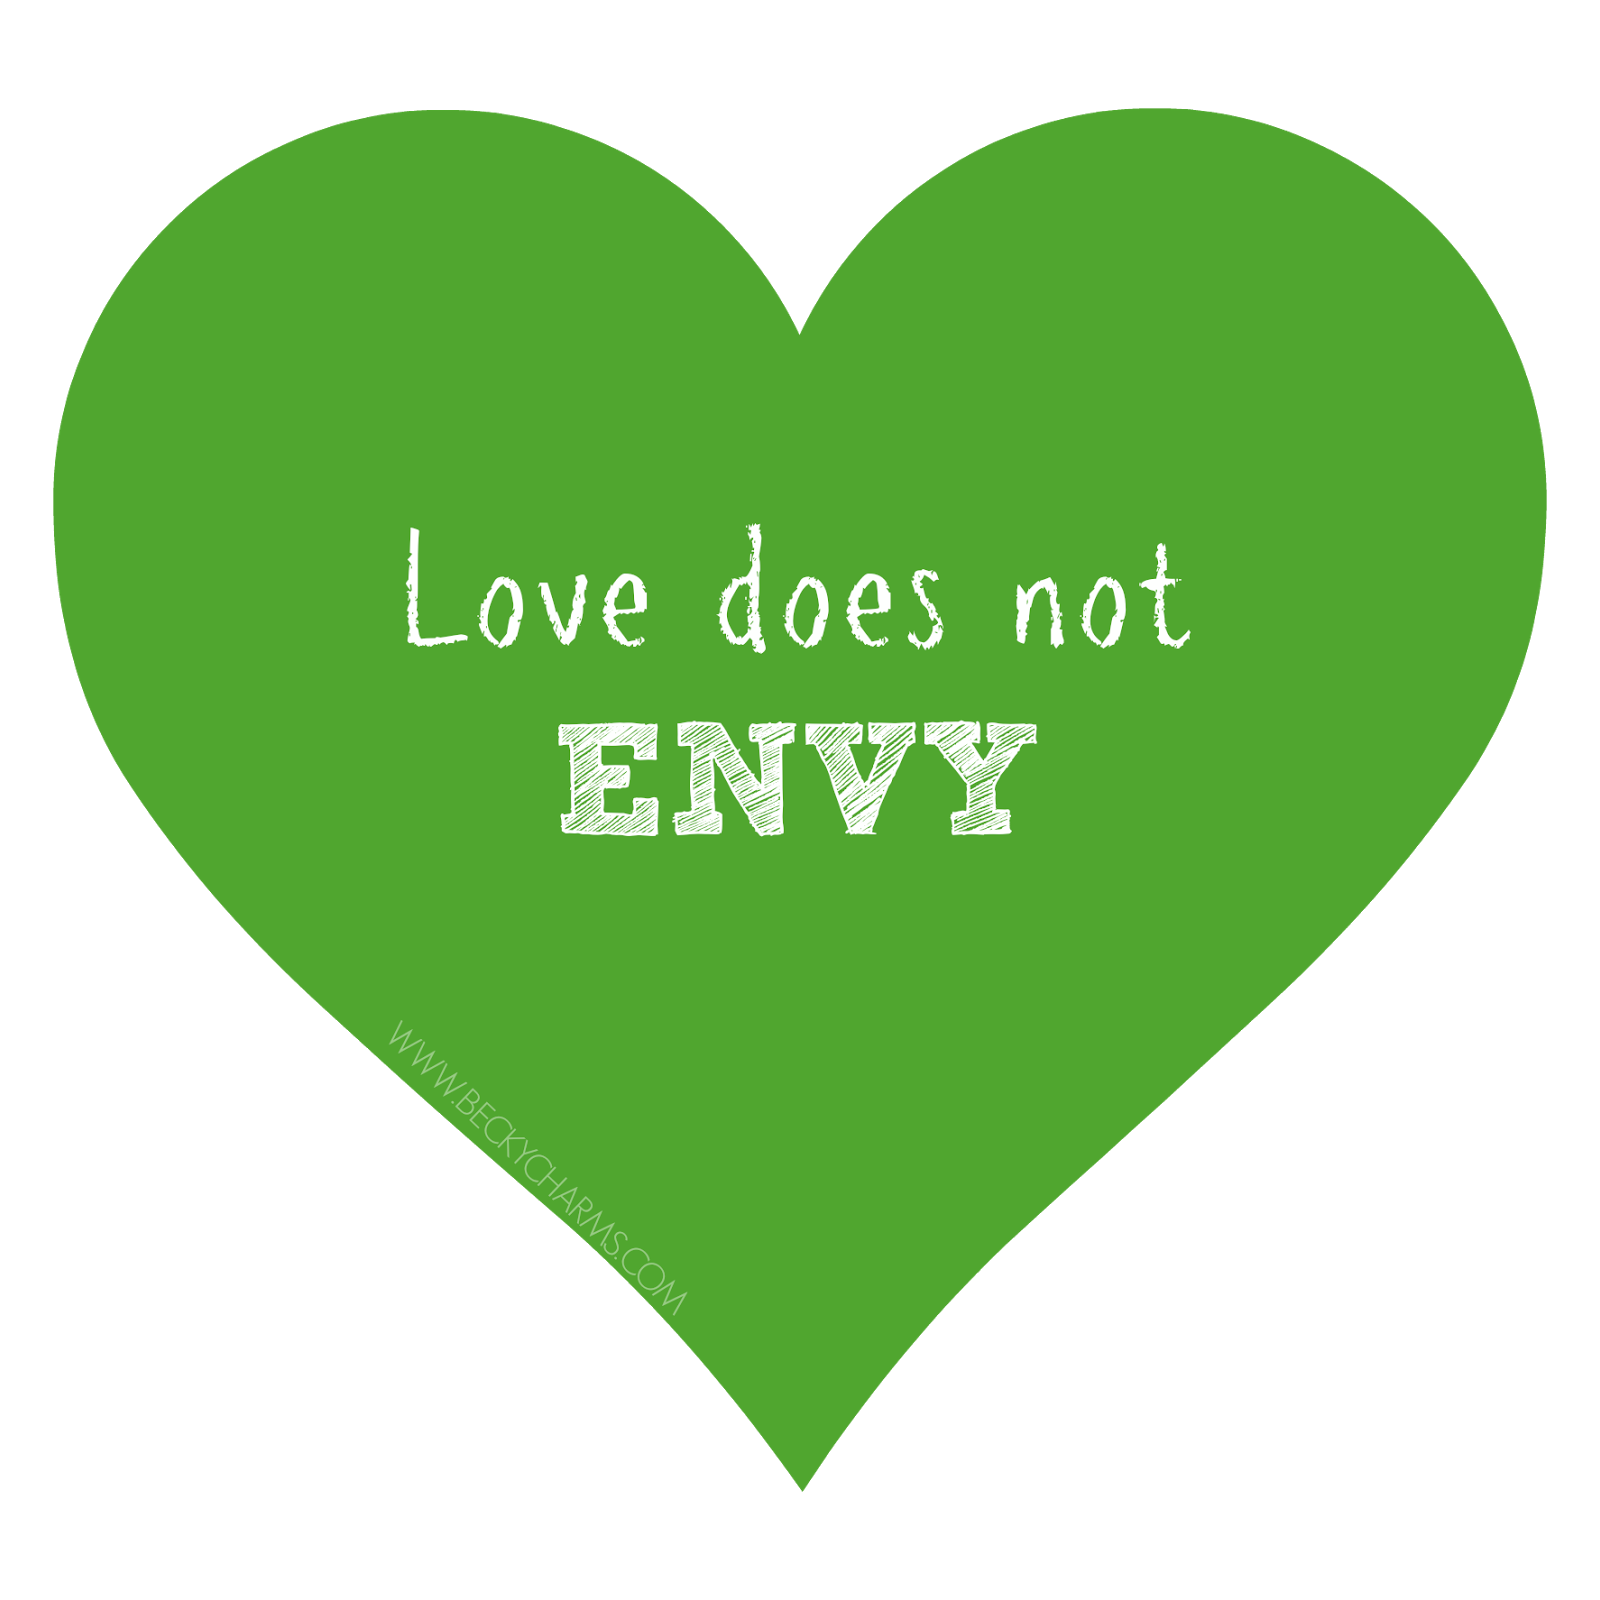 Green Heart Love does not envy by BeckyCharms 2014